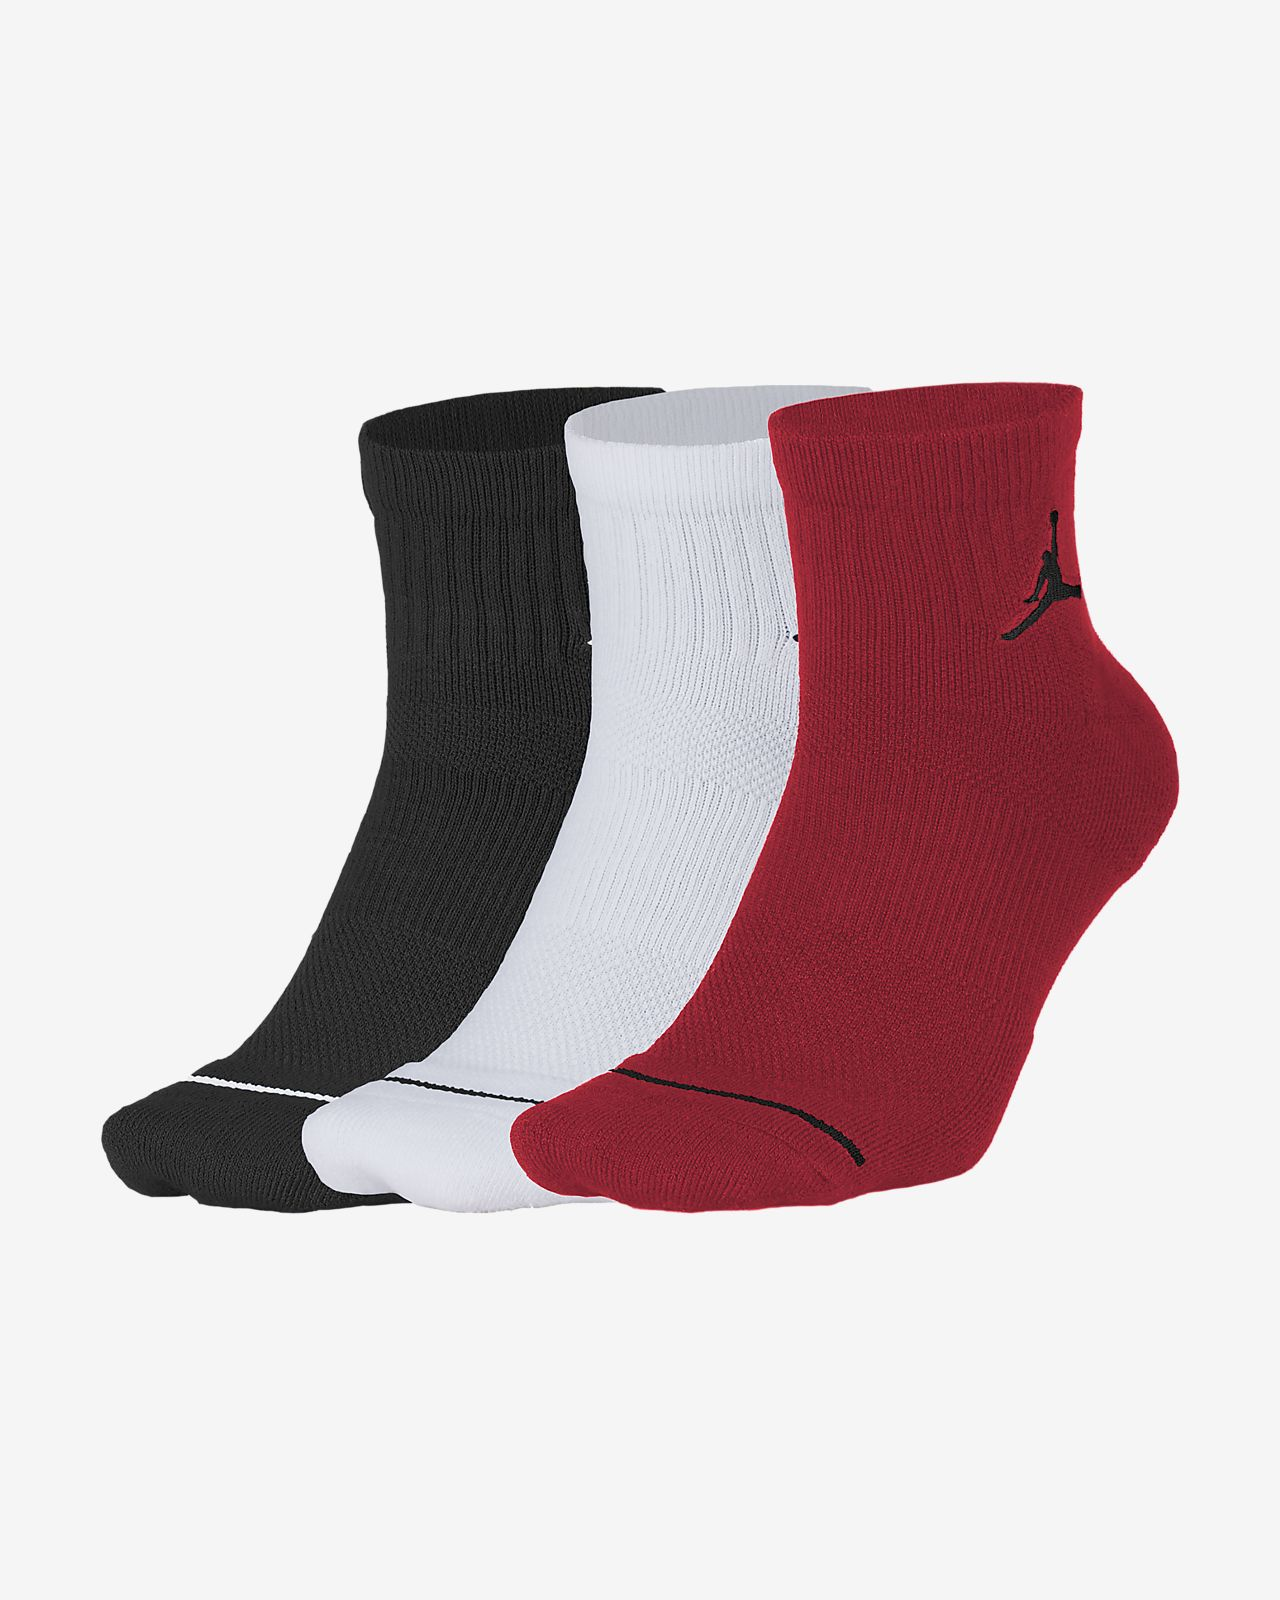 Jordan Everyday Max Knöchelsocken (3 Paar)